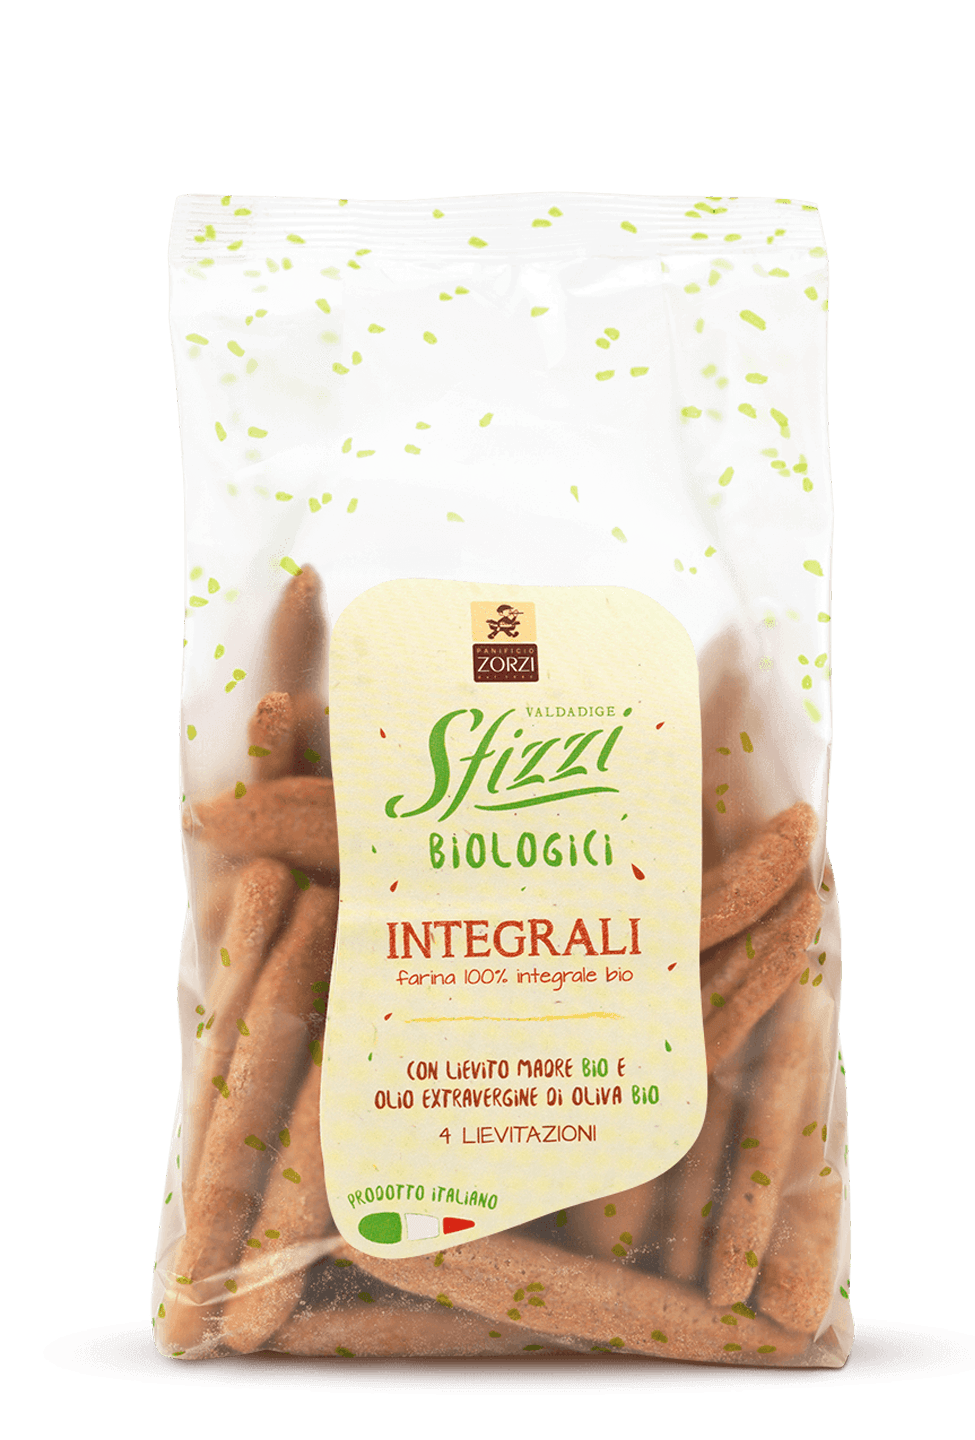 Whole Wheat Organic Sfizzi Mini Breadsticks